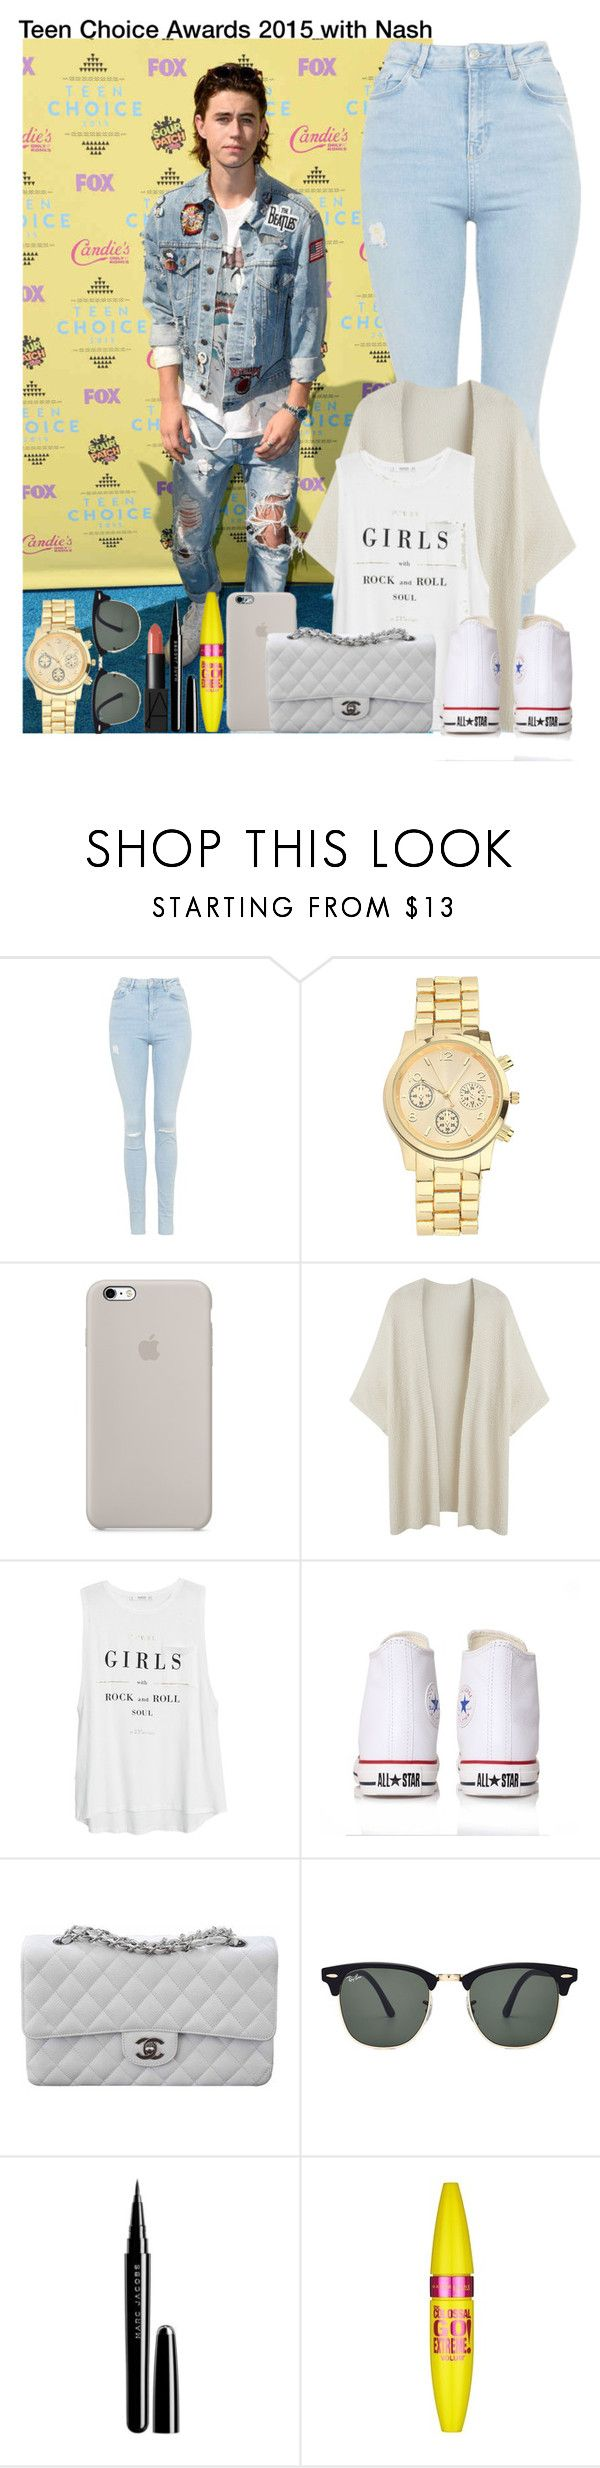 """Teen Choice Awards 2015 with Nash"" by irish26-1 ❤ liked on Polyvore featuring Topshop, MANGO, Converse, Chanel, Ray-Ban, Marc Jacobs, Maybelline, NARS Cosmetics and plus size clothing"